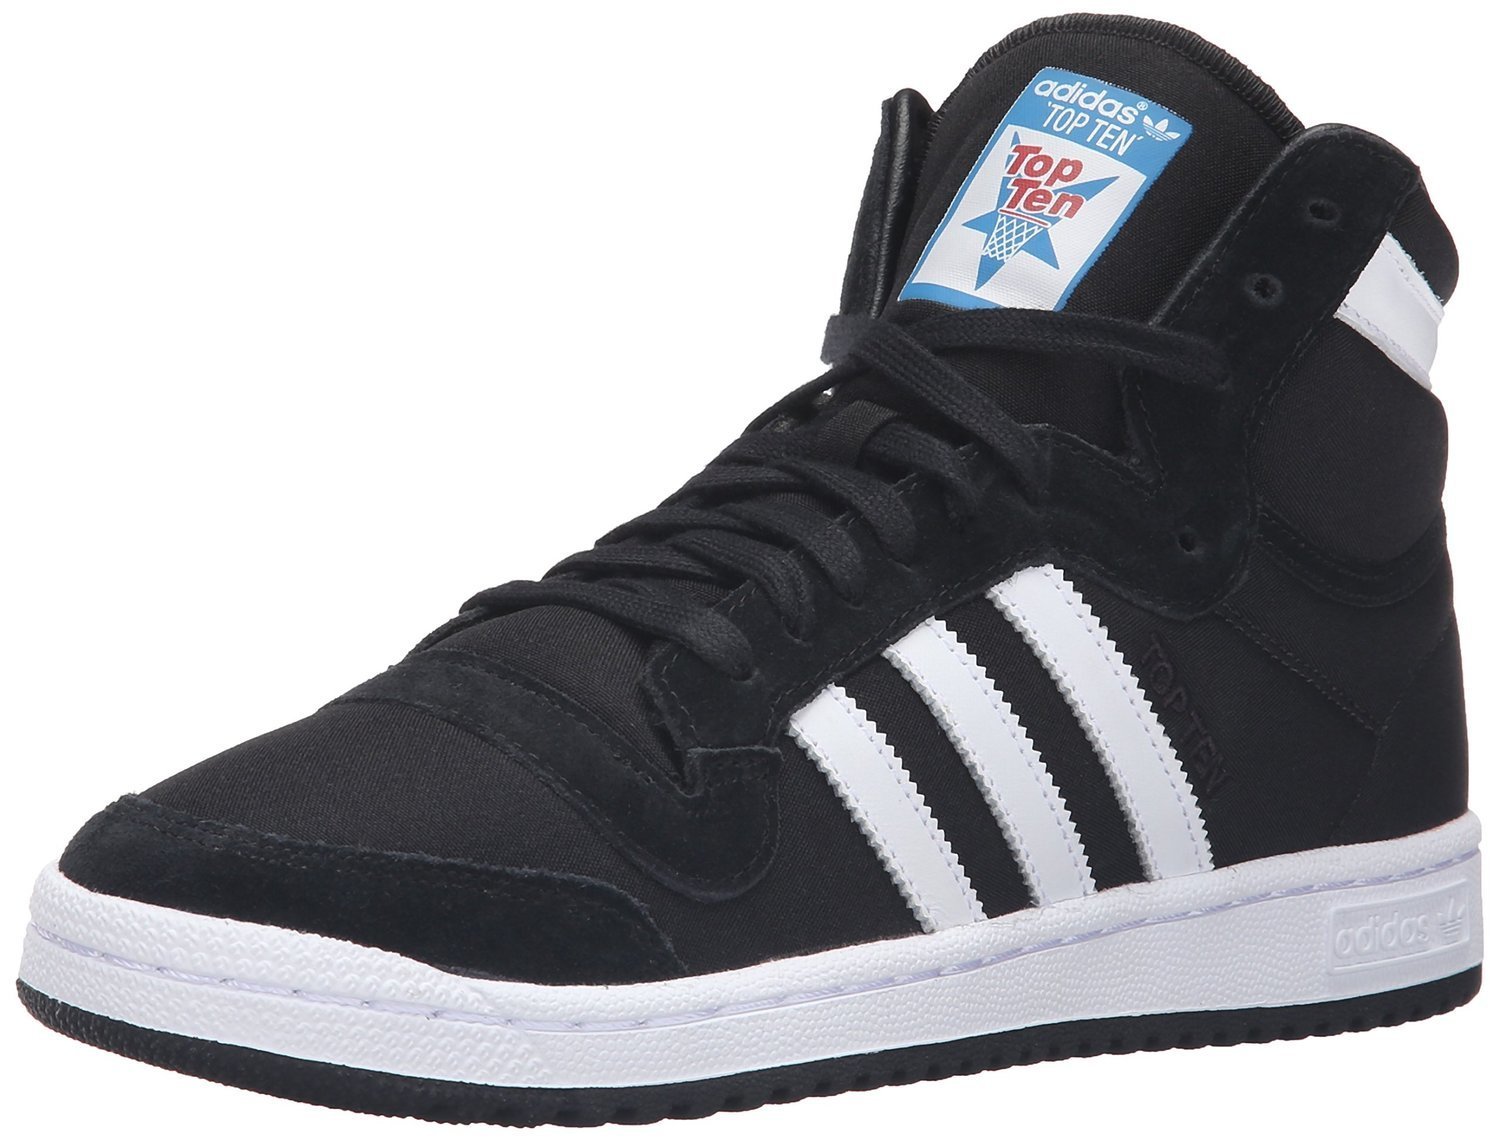 adidas mens top ten hi shoes black white b27506 ebay. Black Bedroom Furniture Sets. Home Design Ideas